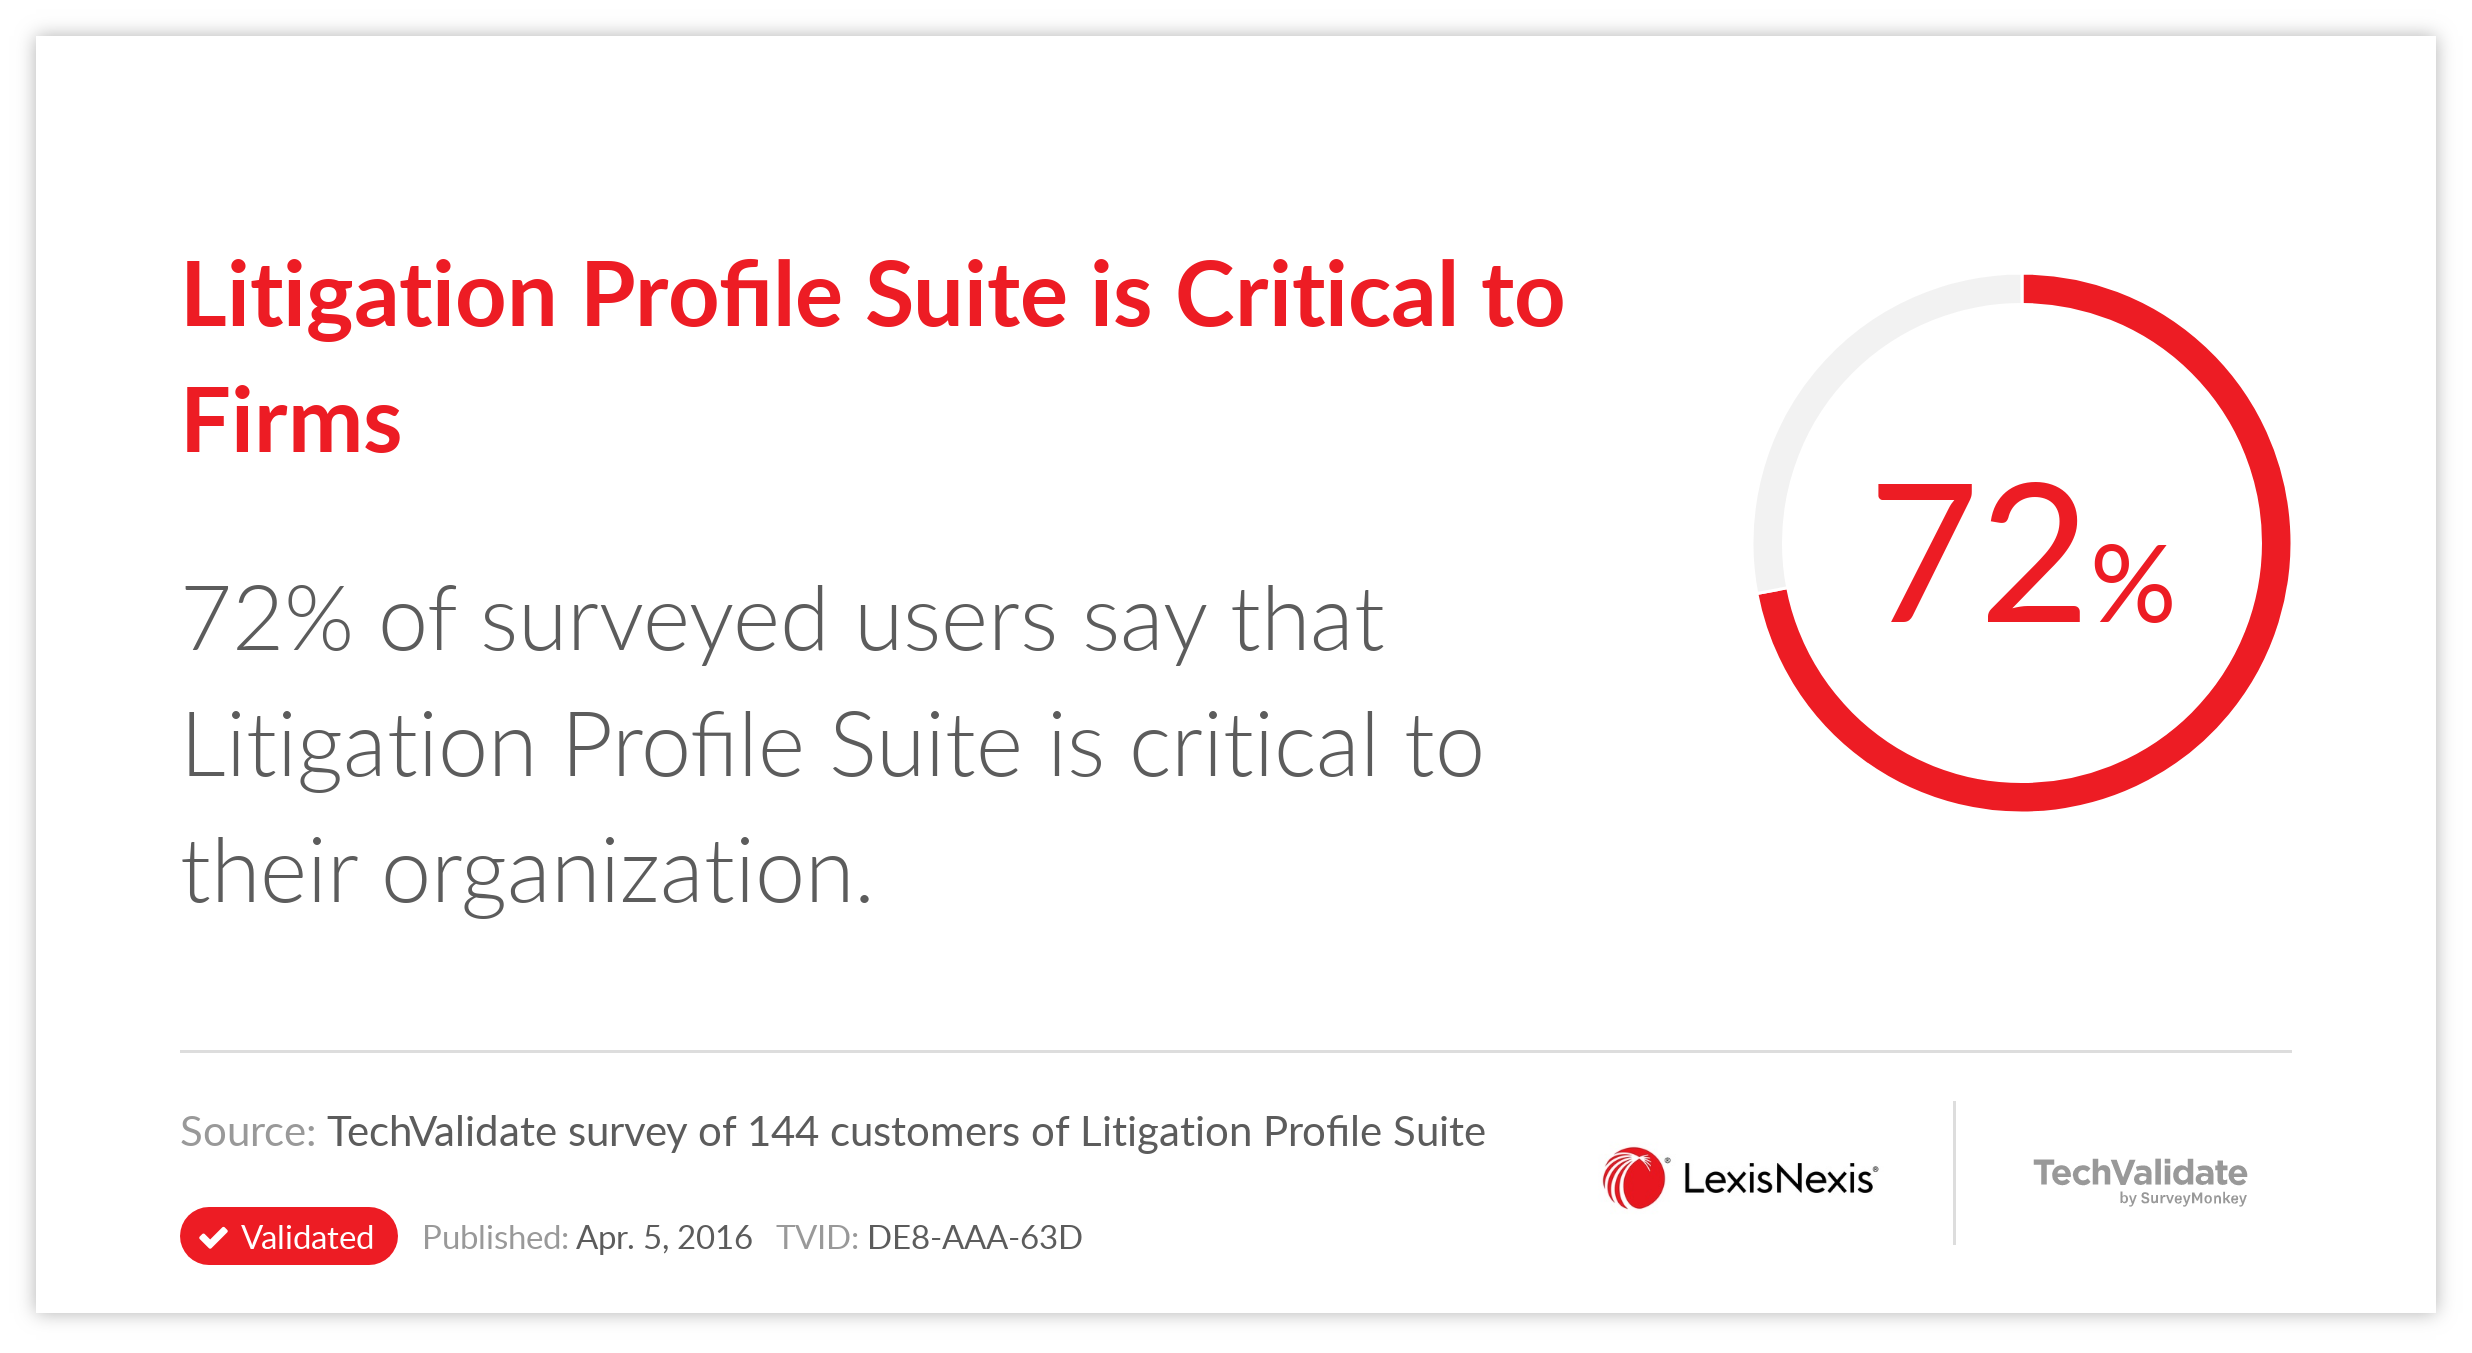 Litigation Profile Suite is Critical to Firms